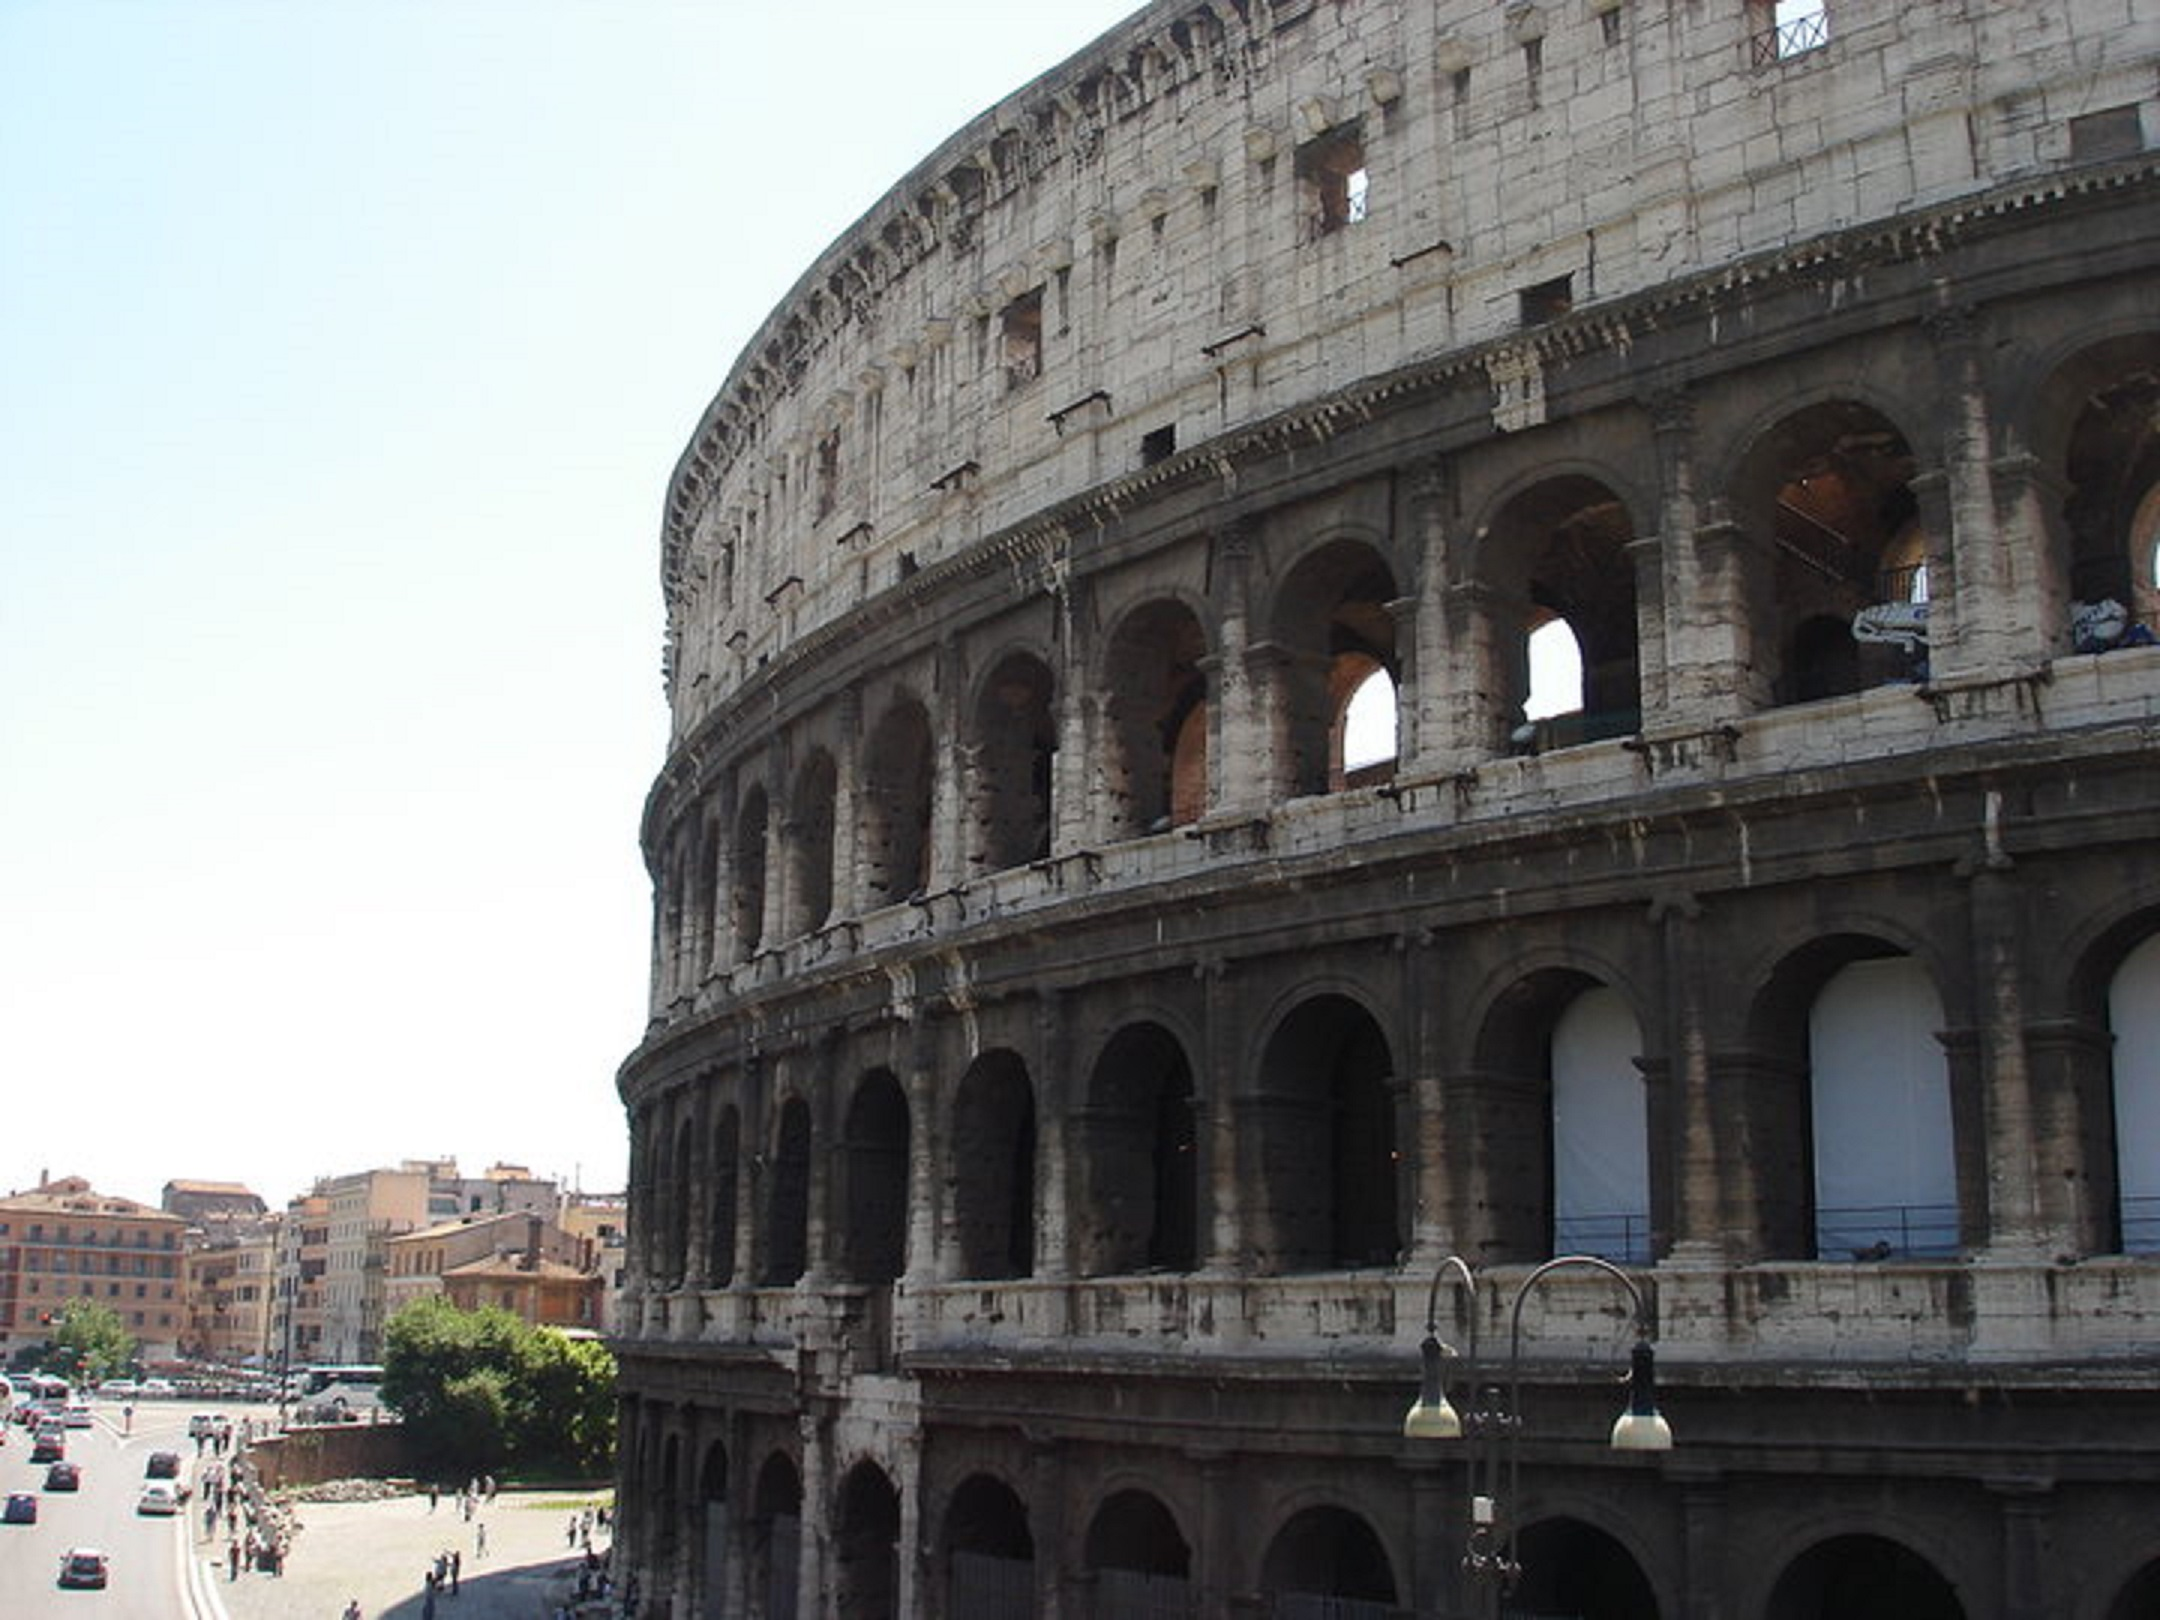 COLOSSEO ou COLISEU